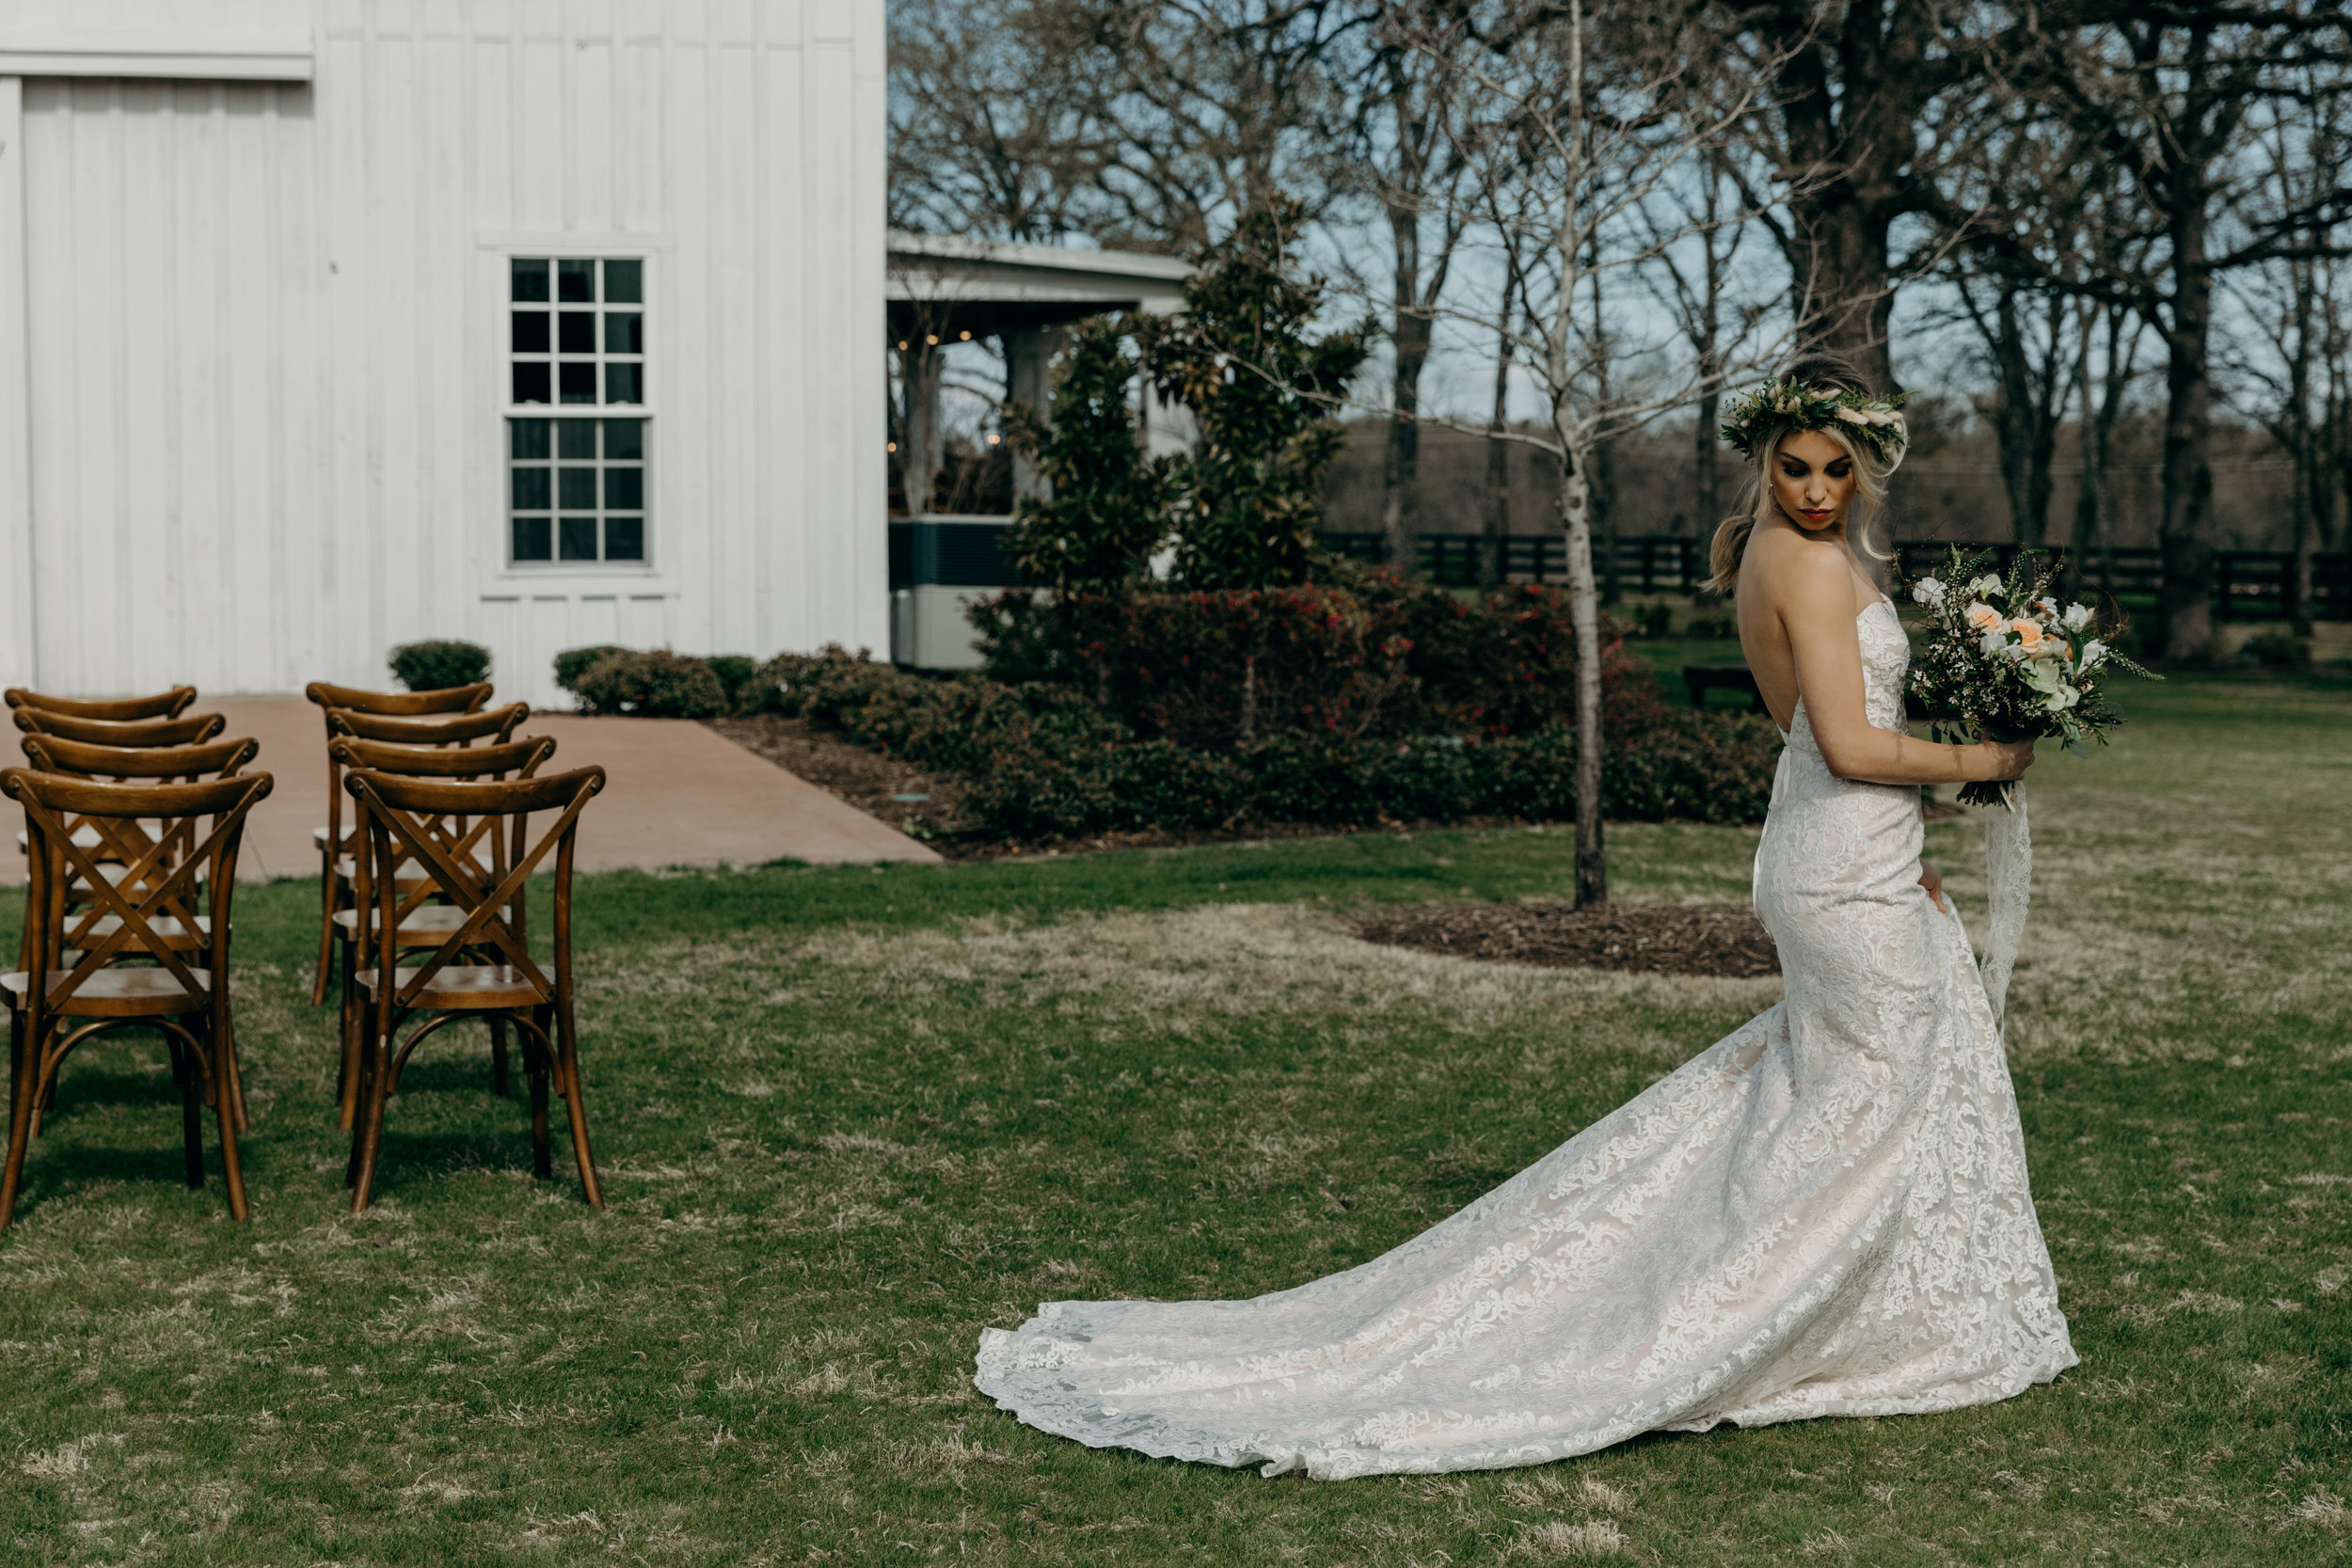 TheWhiteSparrowStyledWeddingShootinTexas-19.jpg